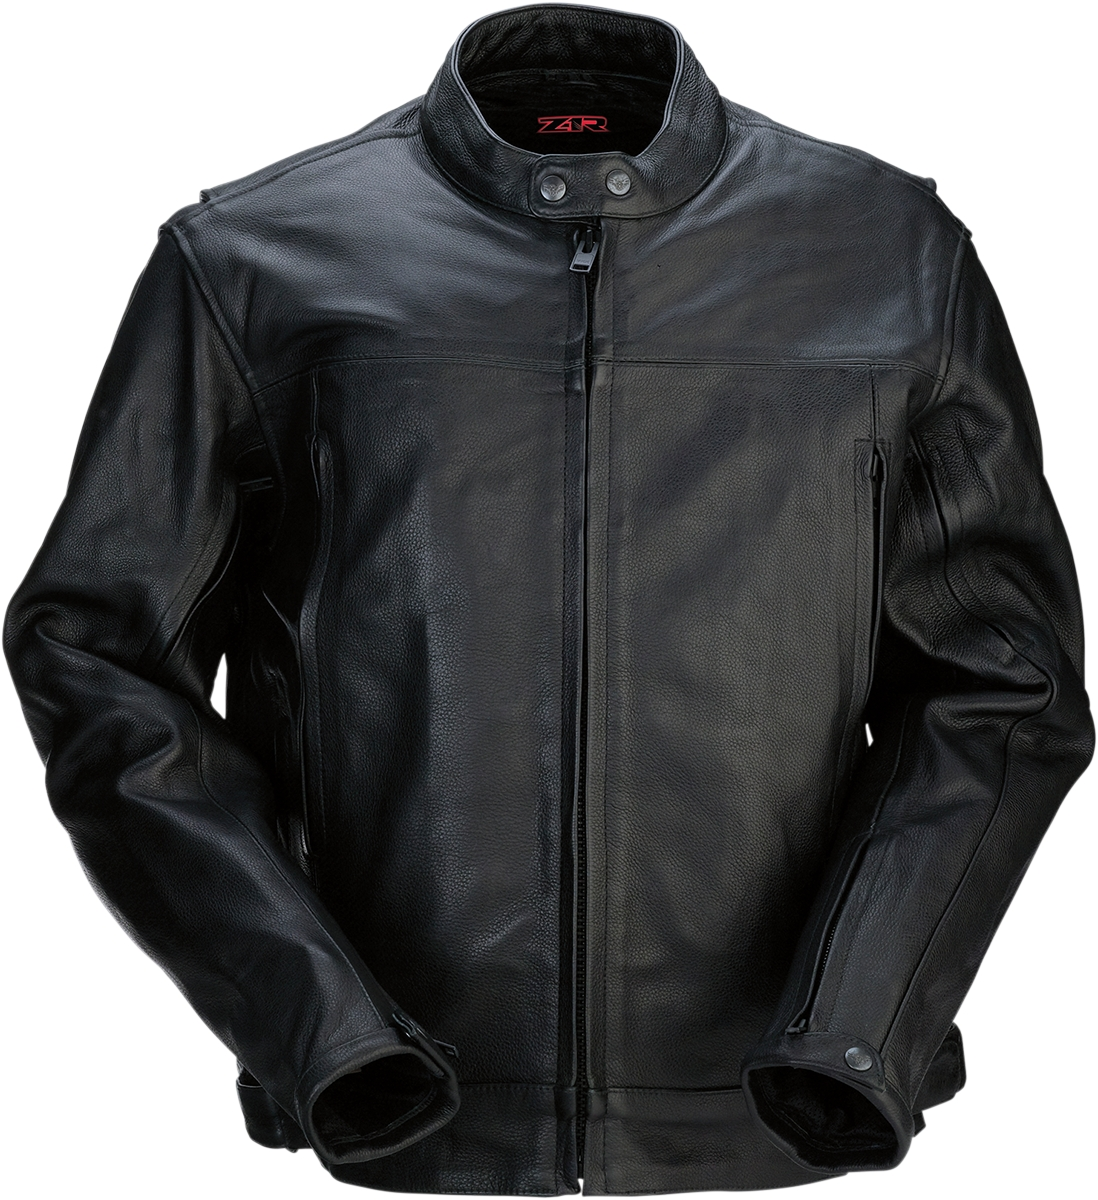 Z1R 357 Leather Jacket